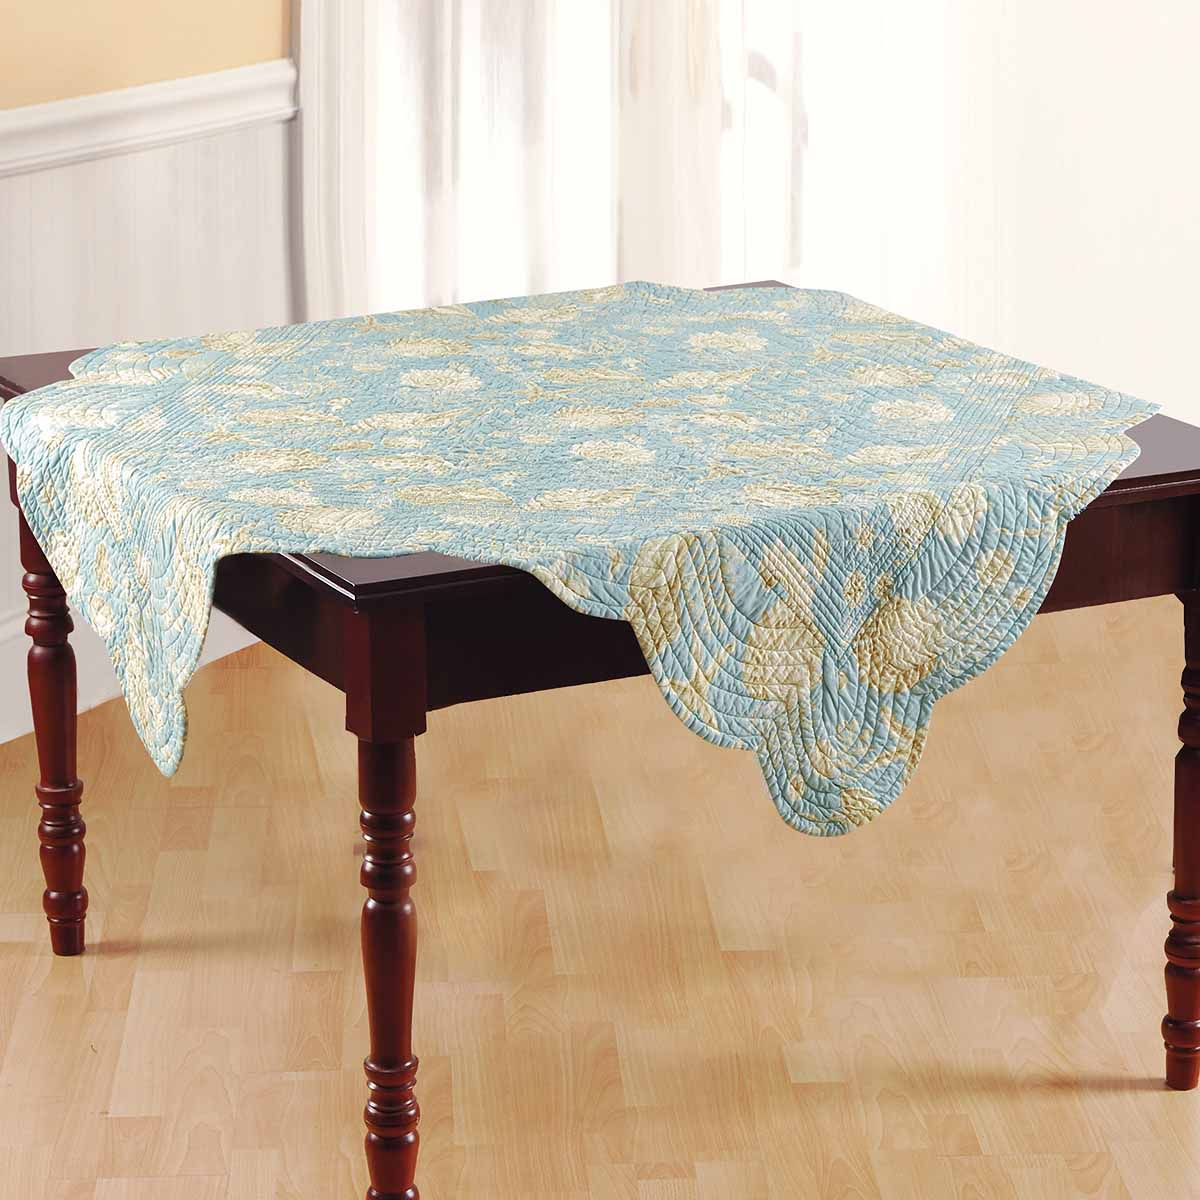 C&F_Coastal_Tabletop_Tablecloths.jpg